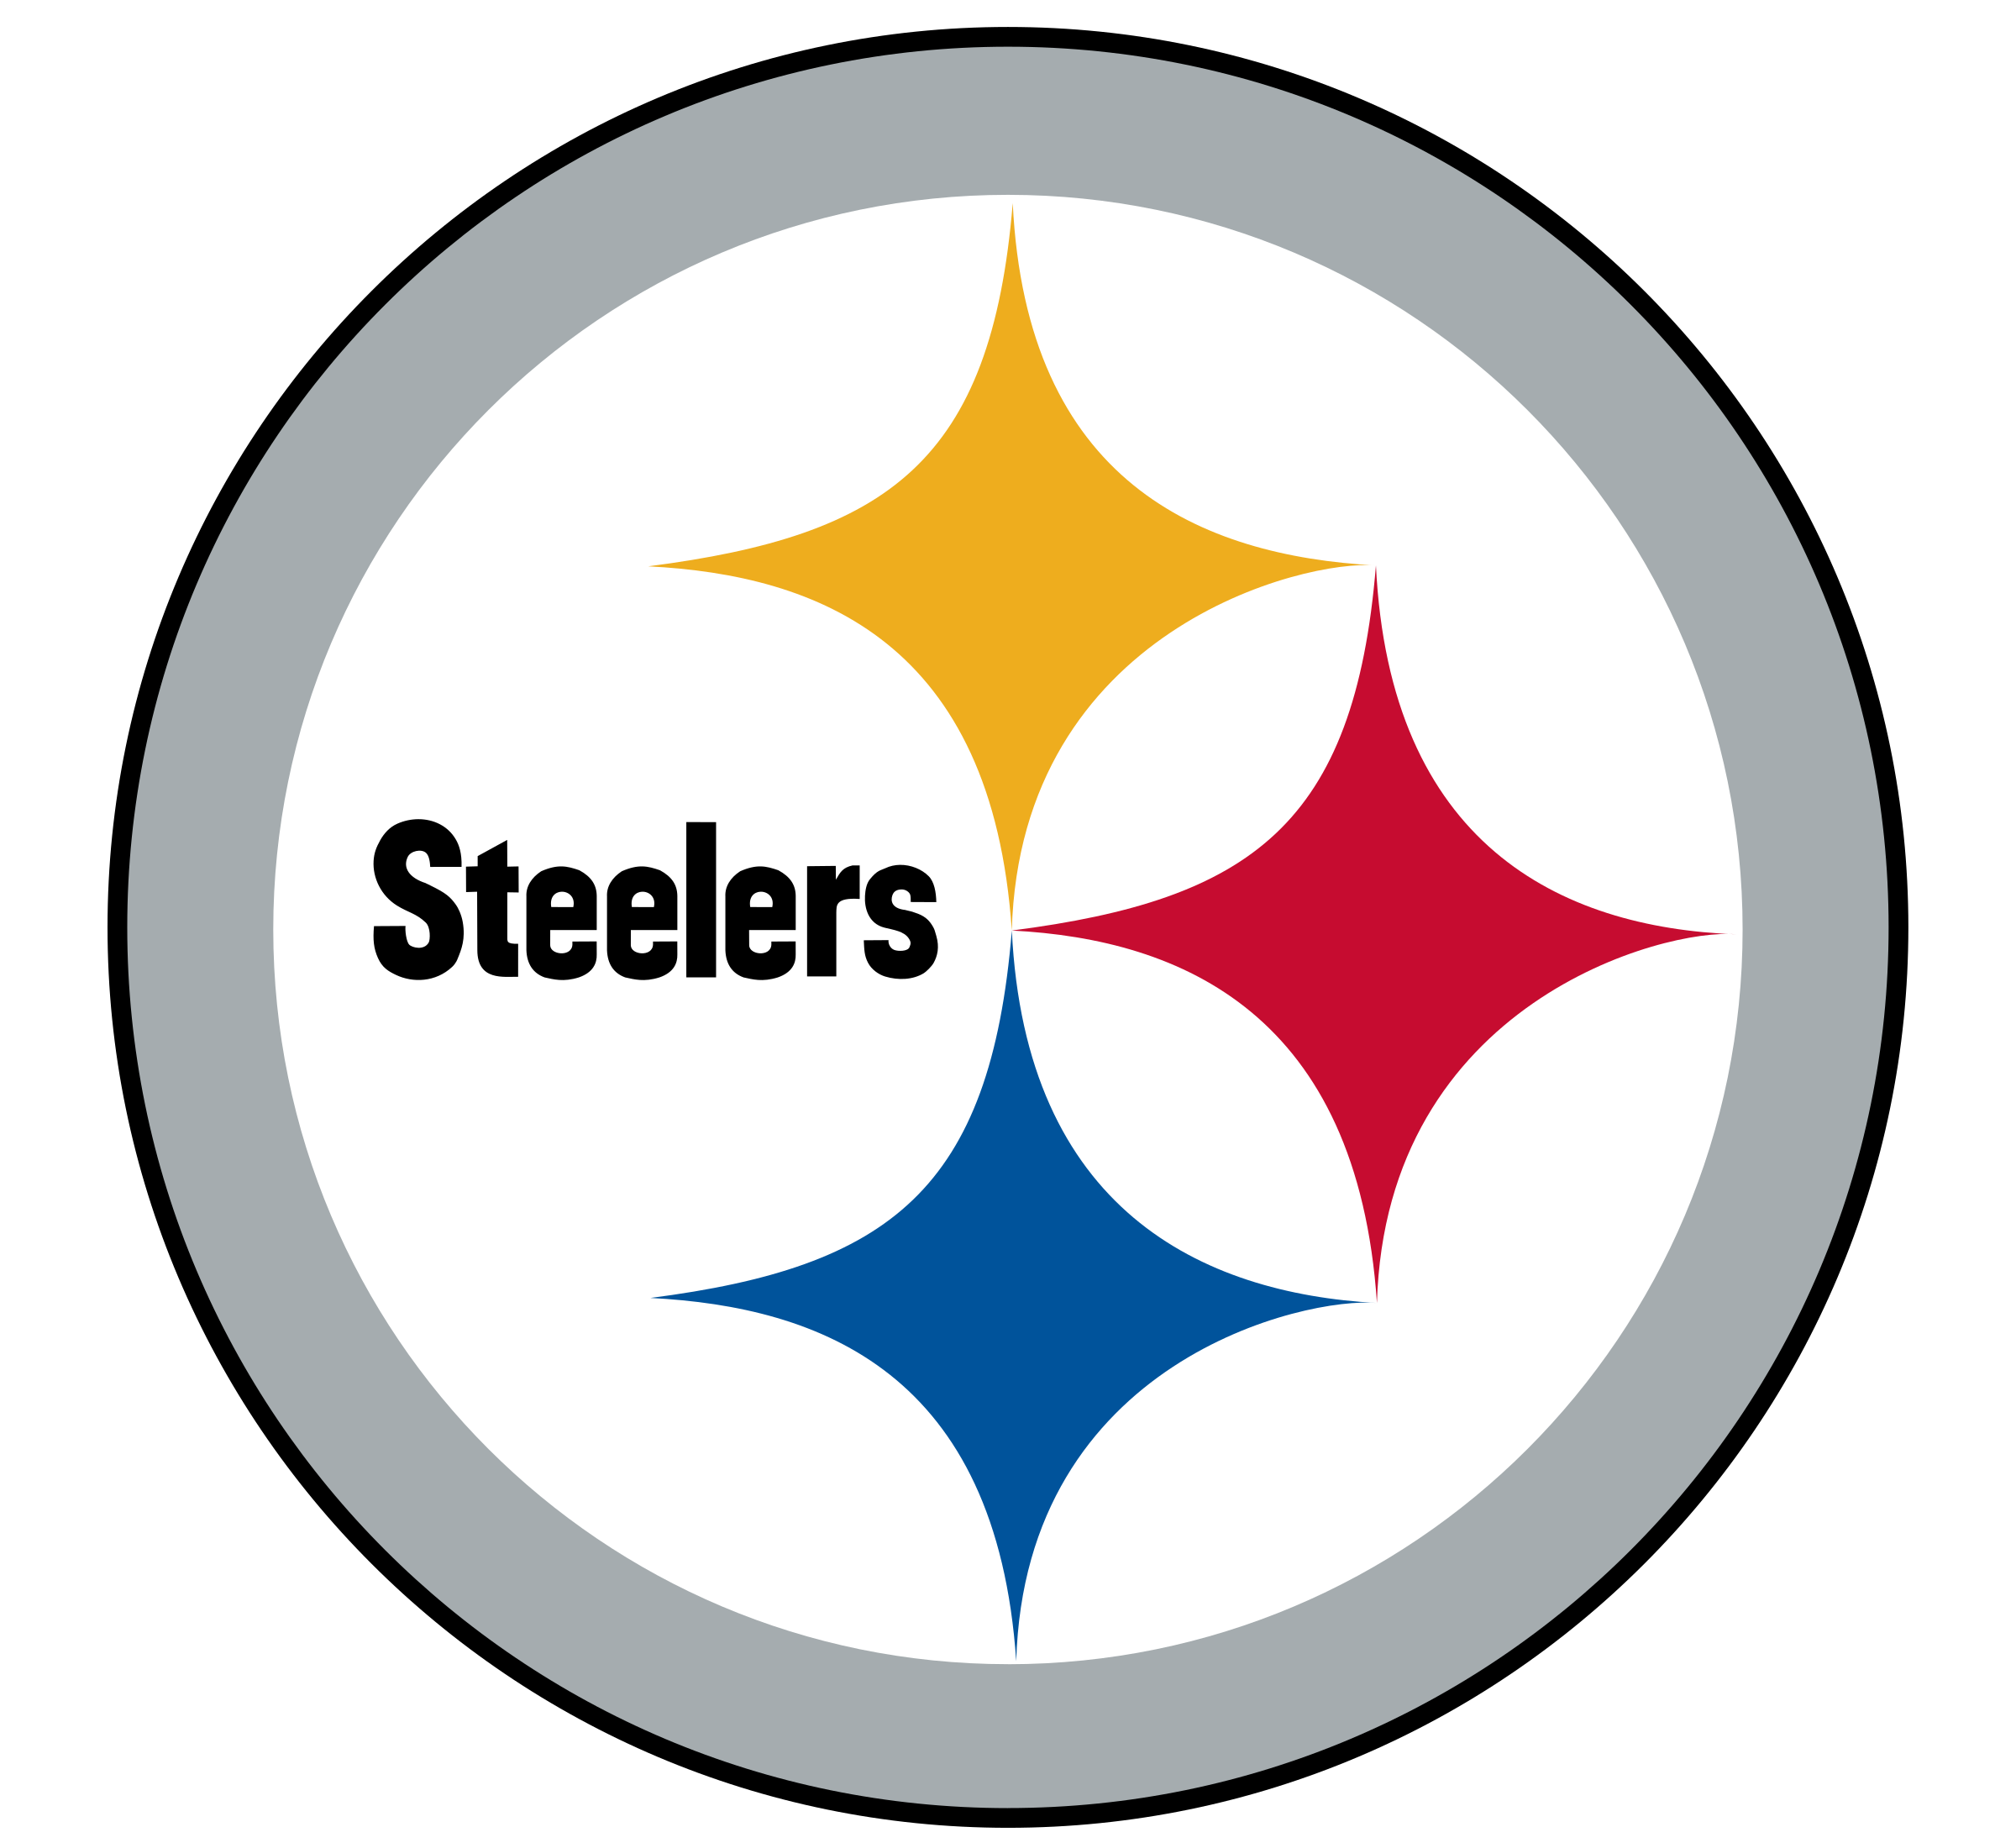 Pittsburgh logo png transparent. Steelers vector official graphic black and white